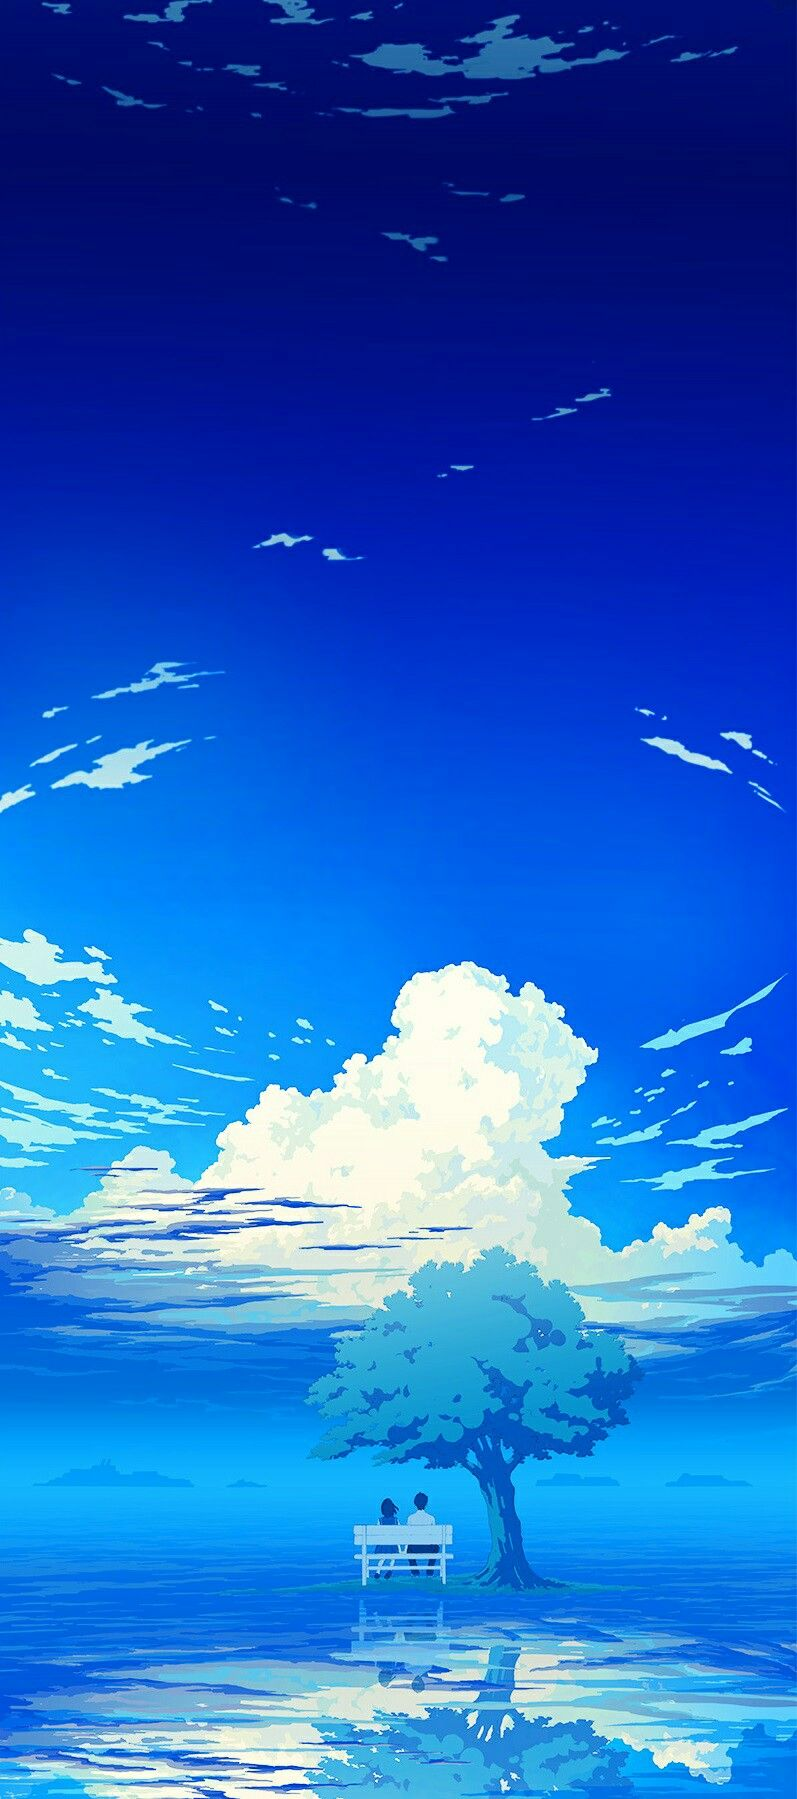 Image for Anime Background Wallpaper Alhuda042 Cenario